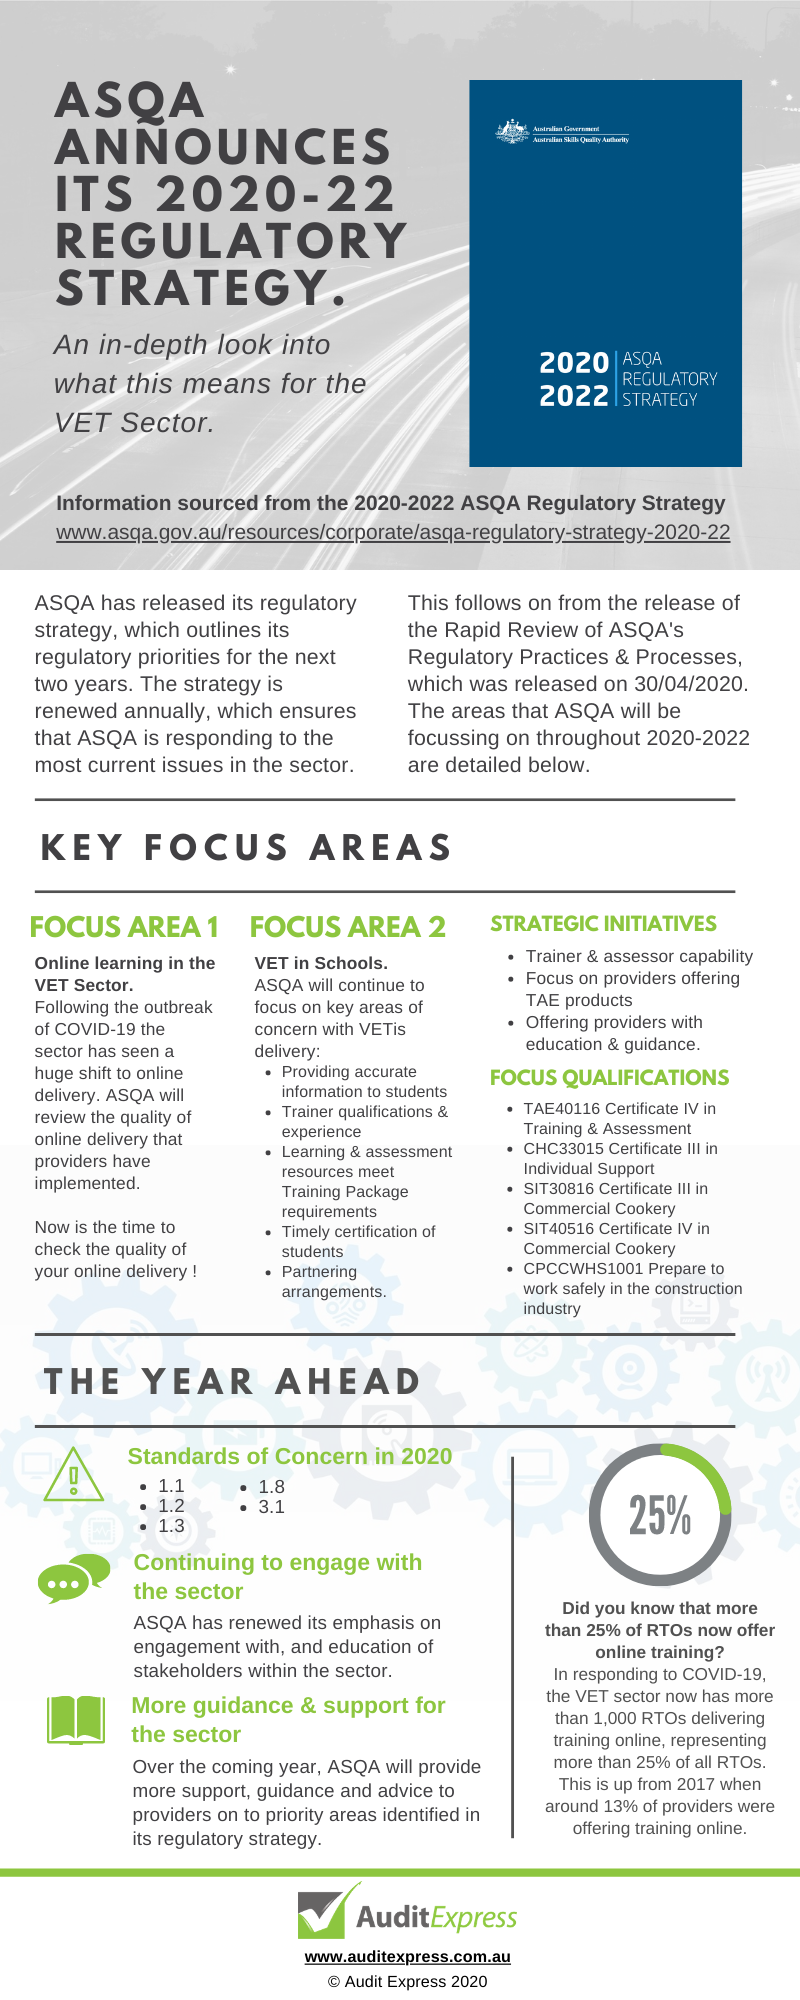 Infographic by Audit Express, unpacking the ASQA 2020-2022 Regulatory Strategy.